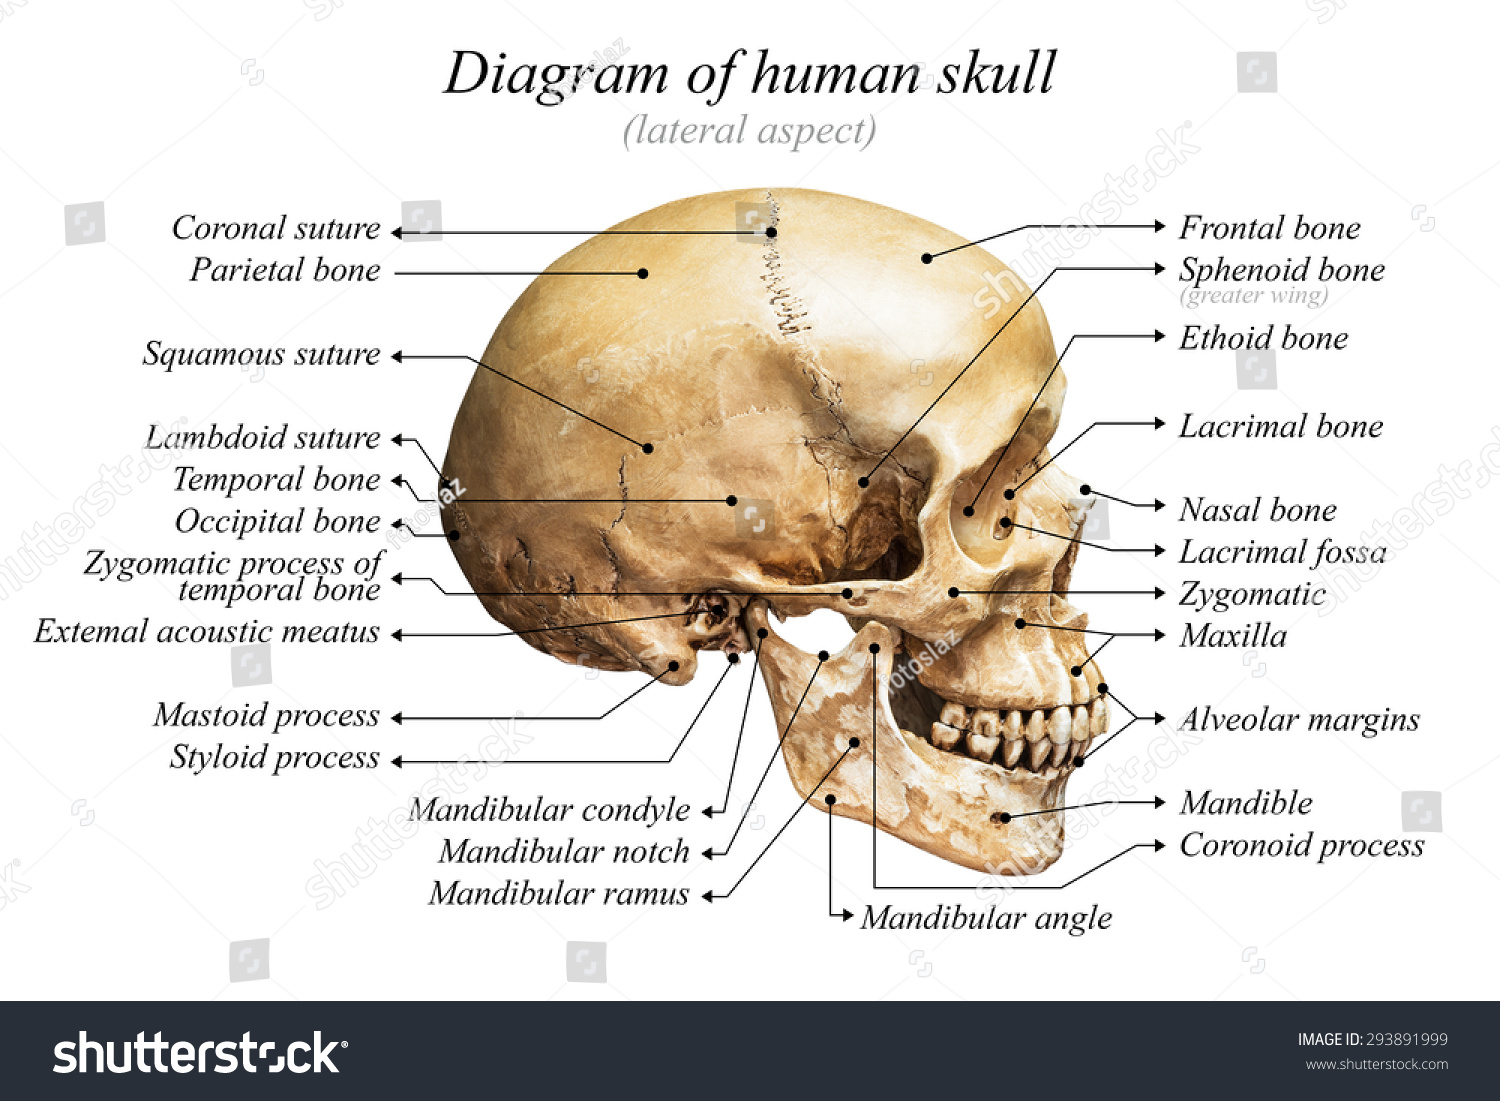 Lateral Aspect Human Skull Diagram On Stock Photo Edit Now